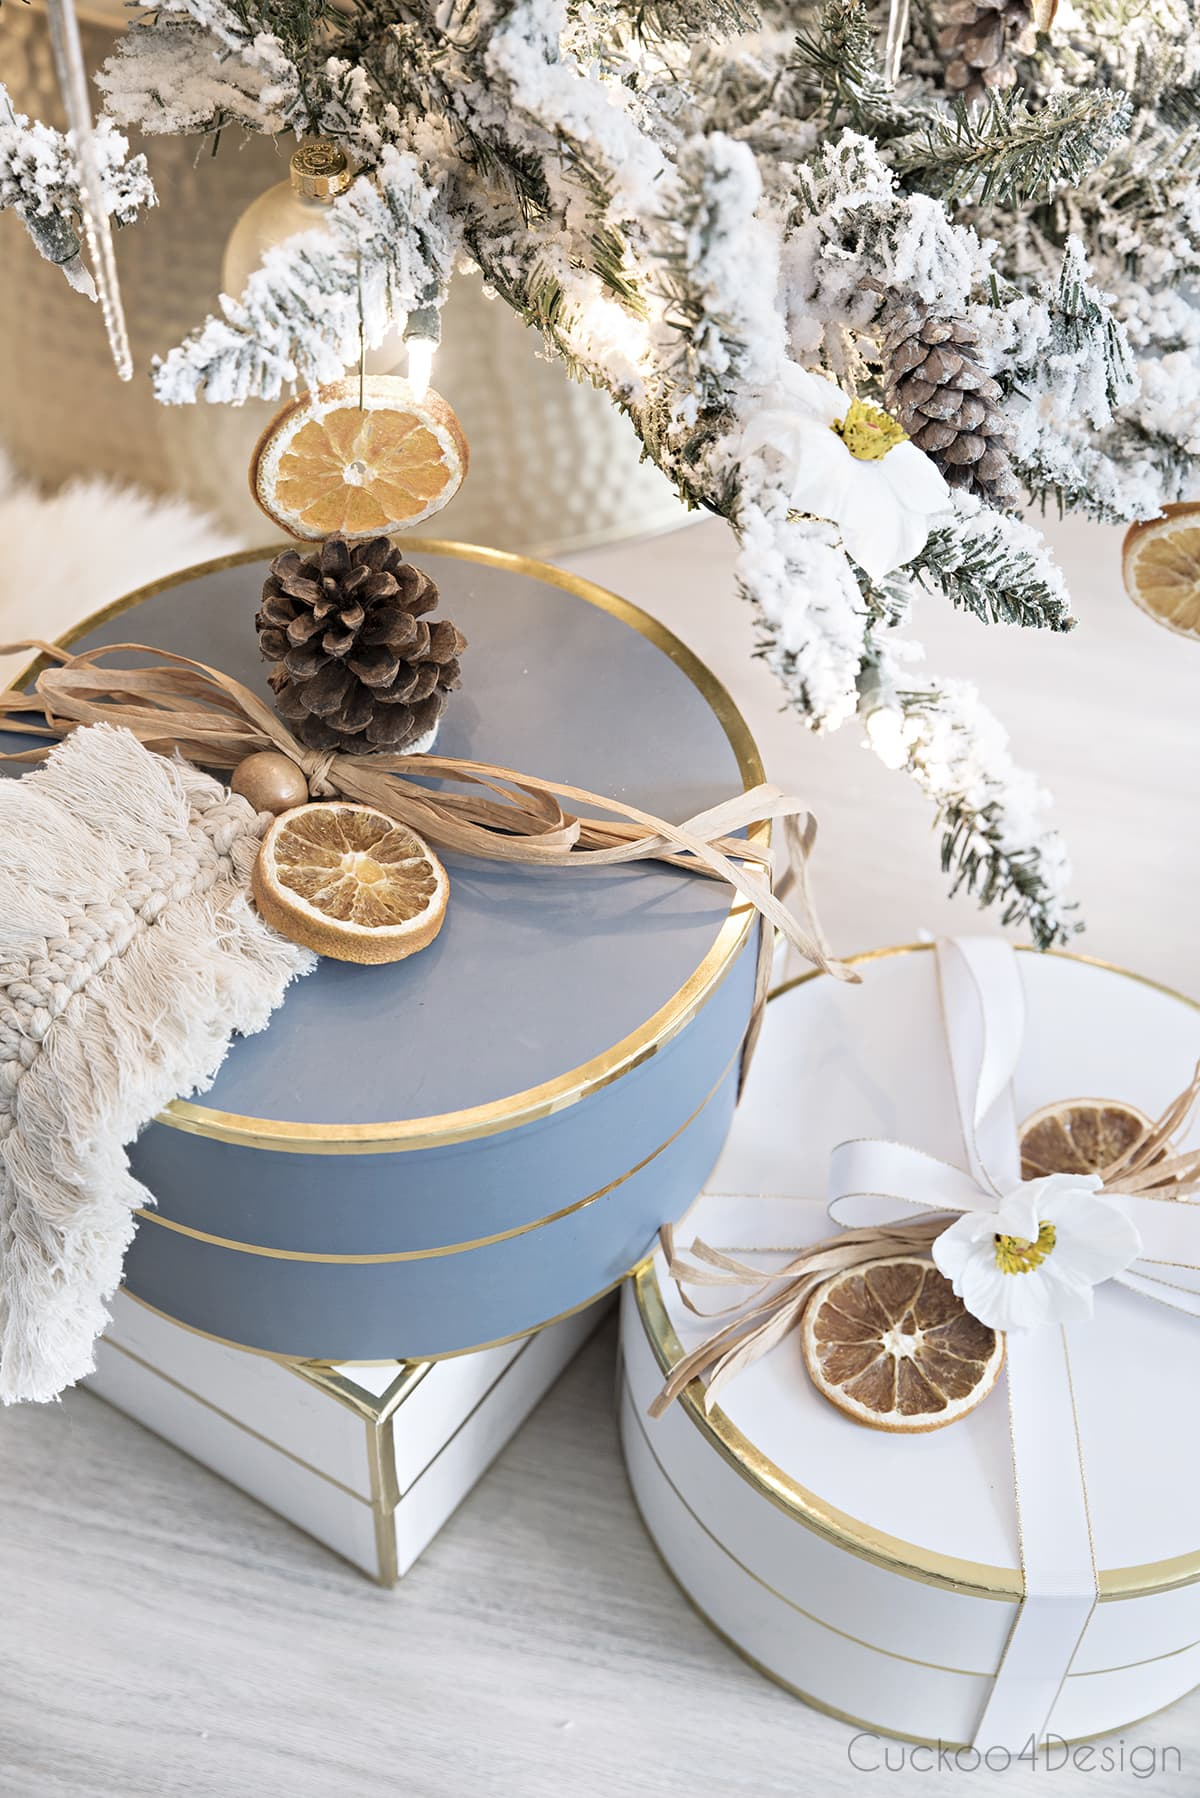 blue, white and gold presents wrapped under flocked natural German Christmas tree